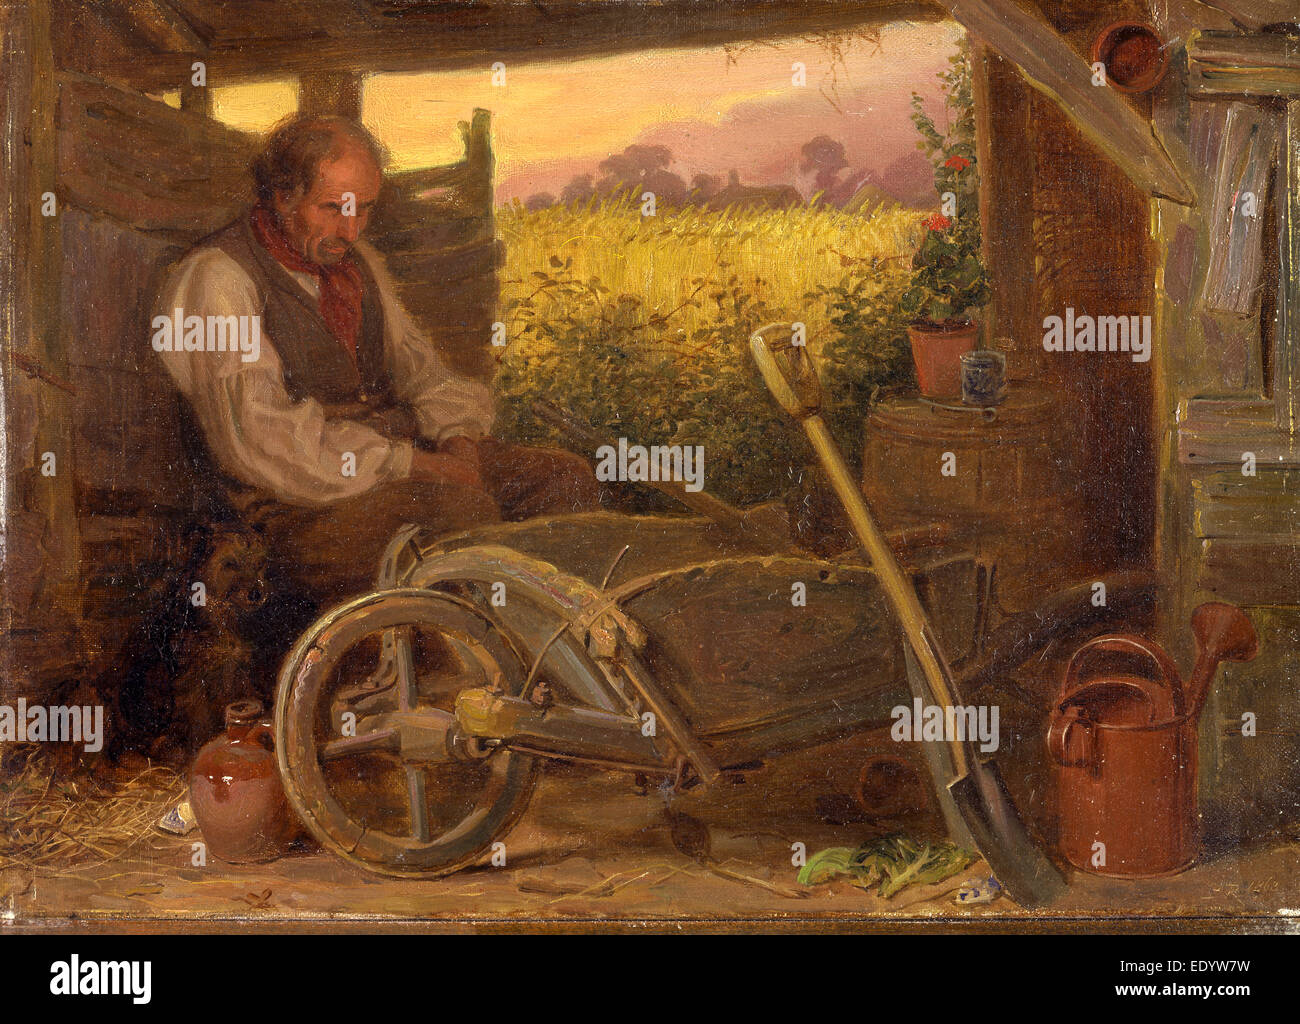 """The Old Gardener Signed and dated, lower right: """"BR 1863"""", Briton Riviere, 1840-1920, British Stock Photo"""